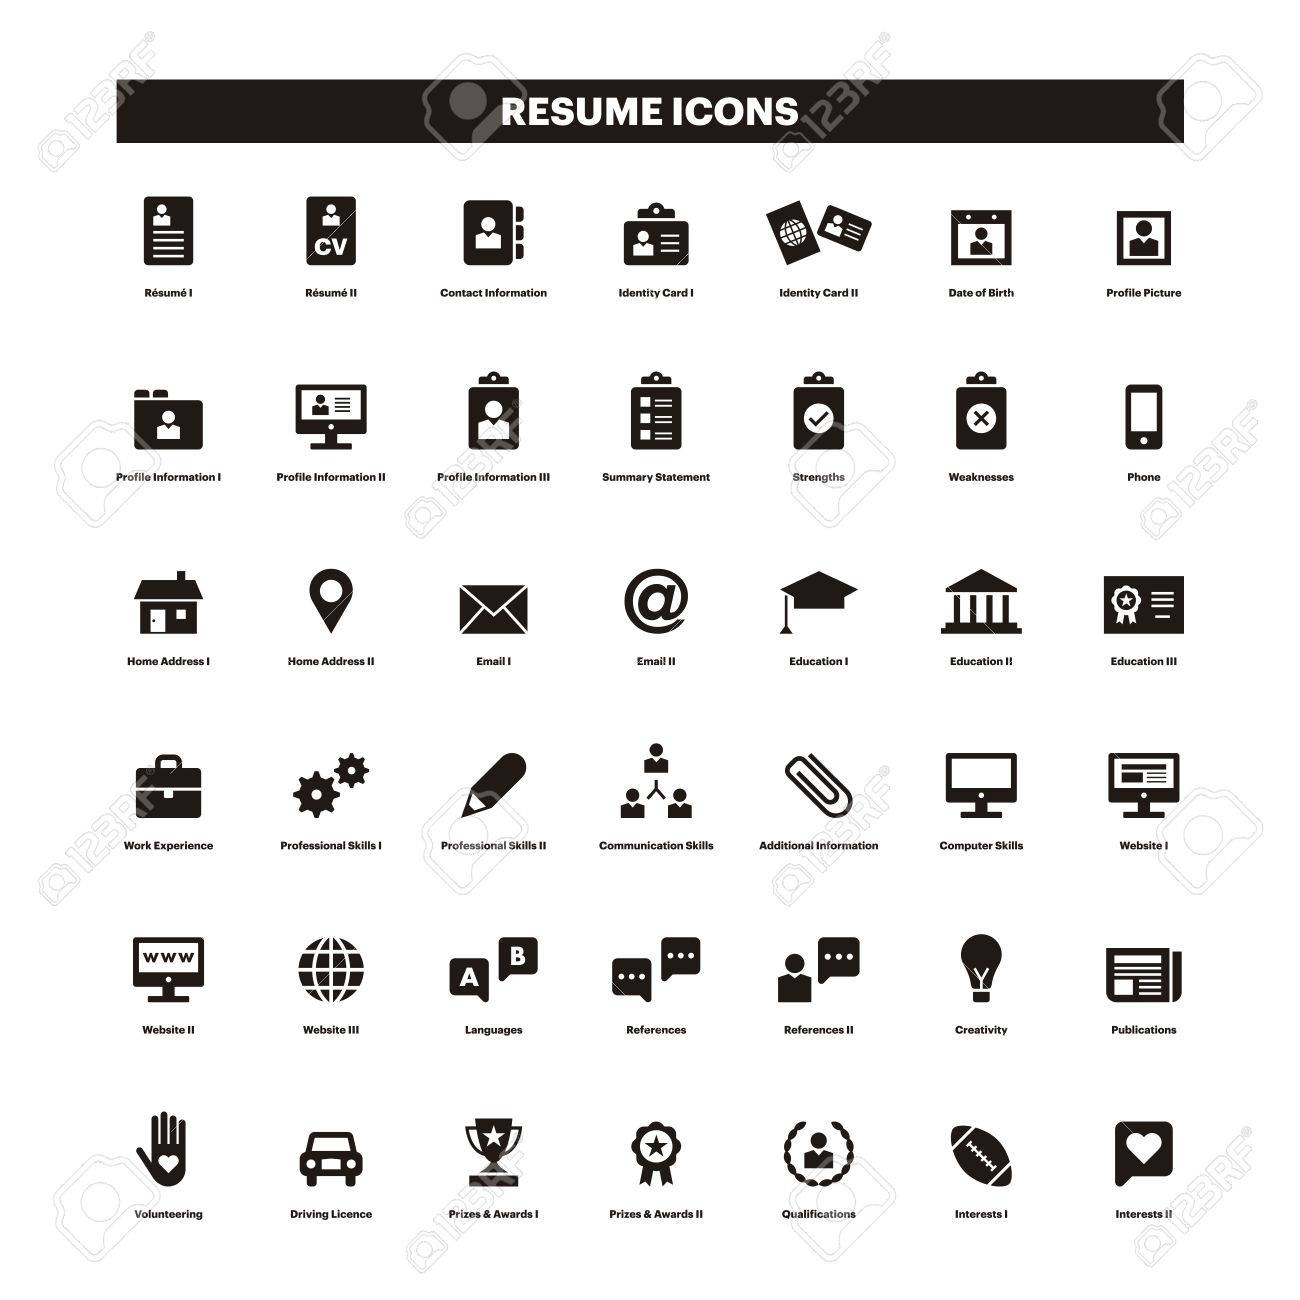 cv and resume black solid icons royalty free cliparts, vectors, and